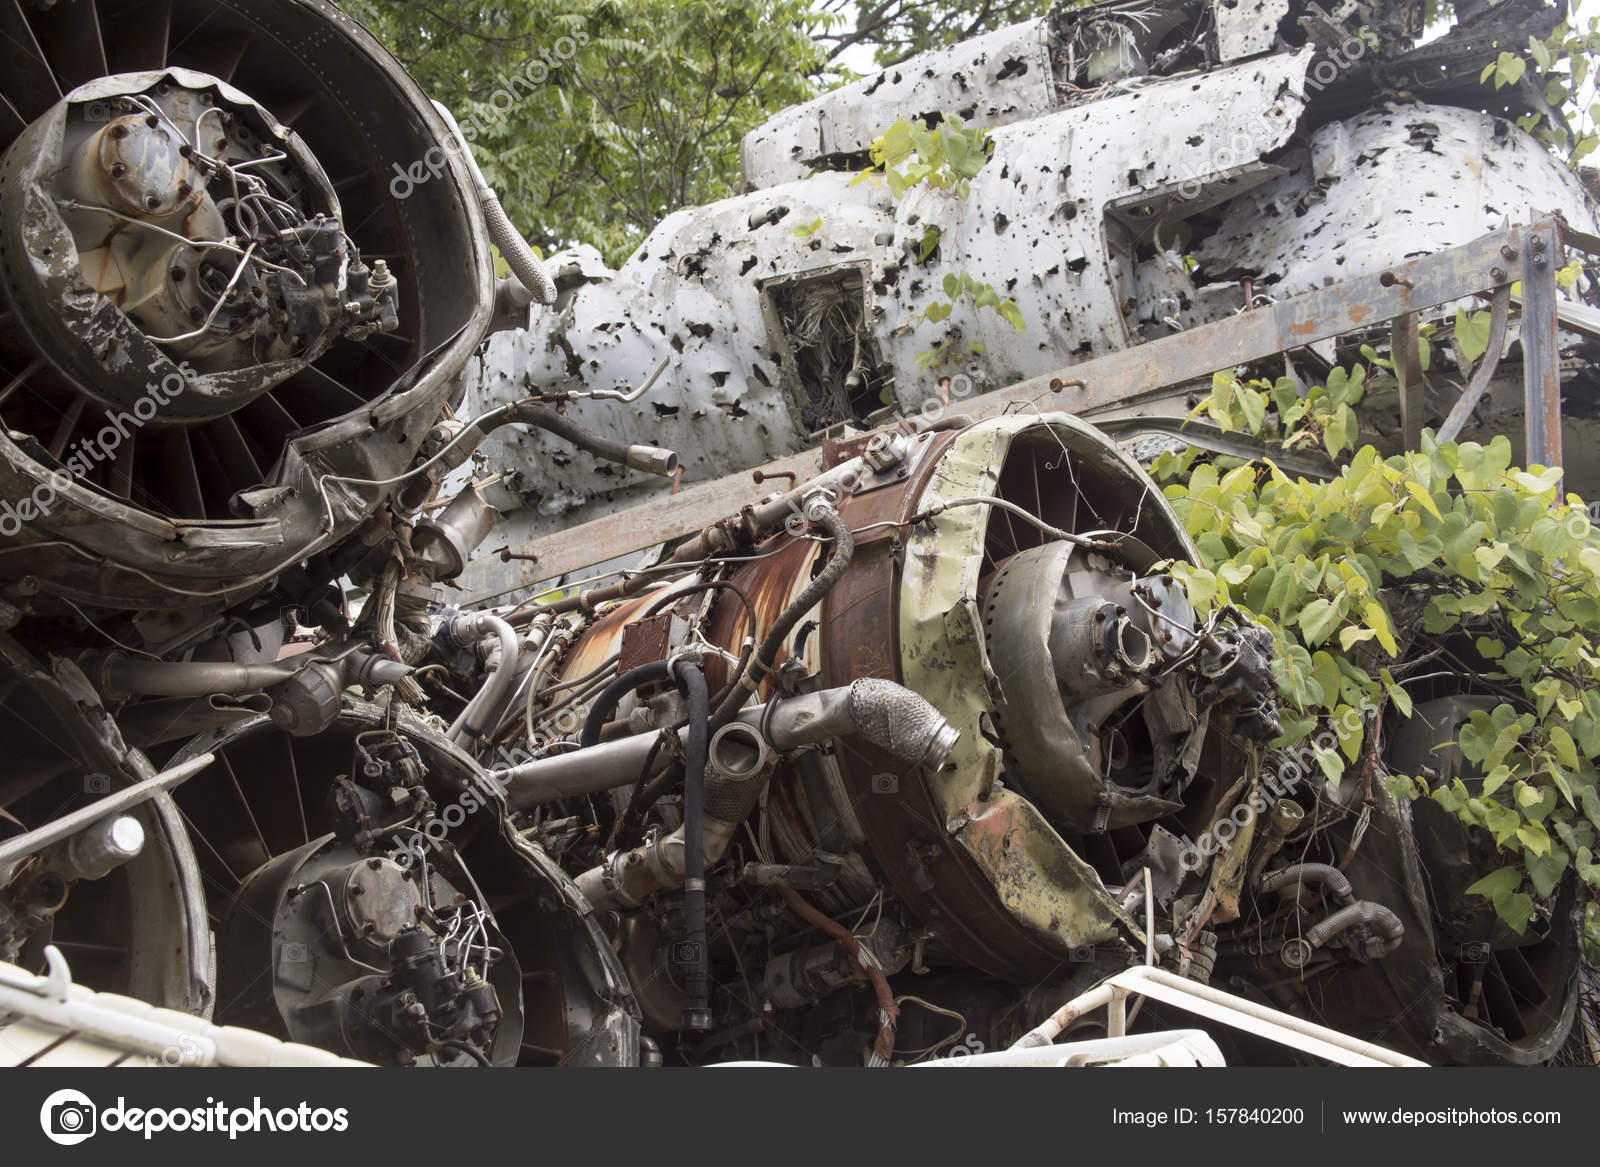 Wreckage of plane in junkyard — Stock Photo © karenfoleyphotography